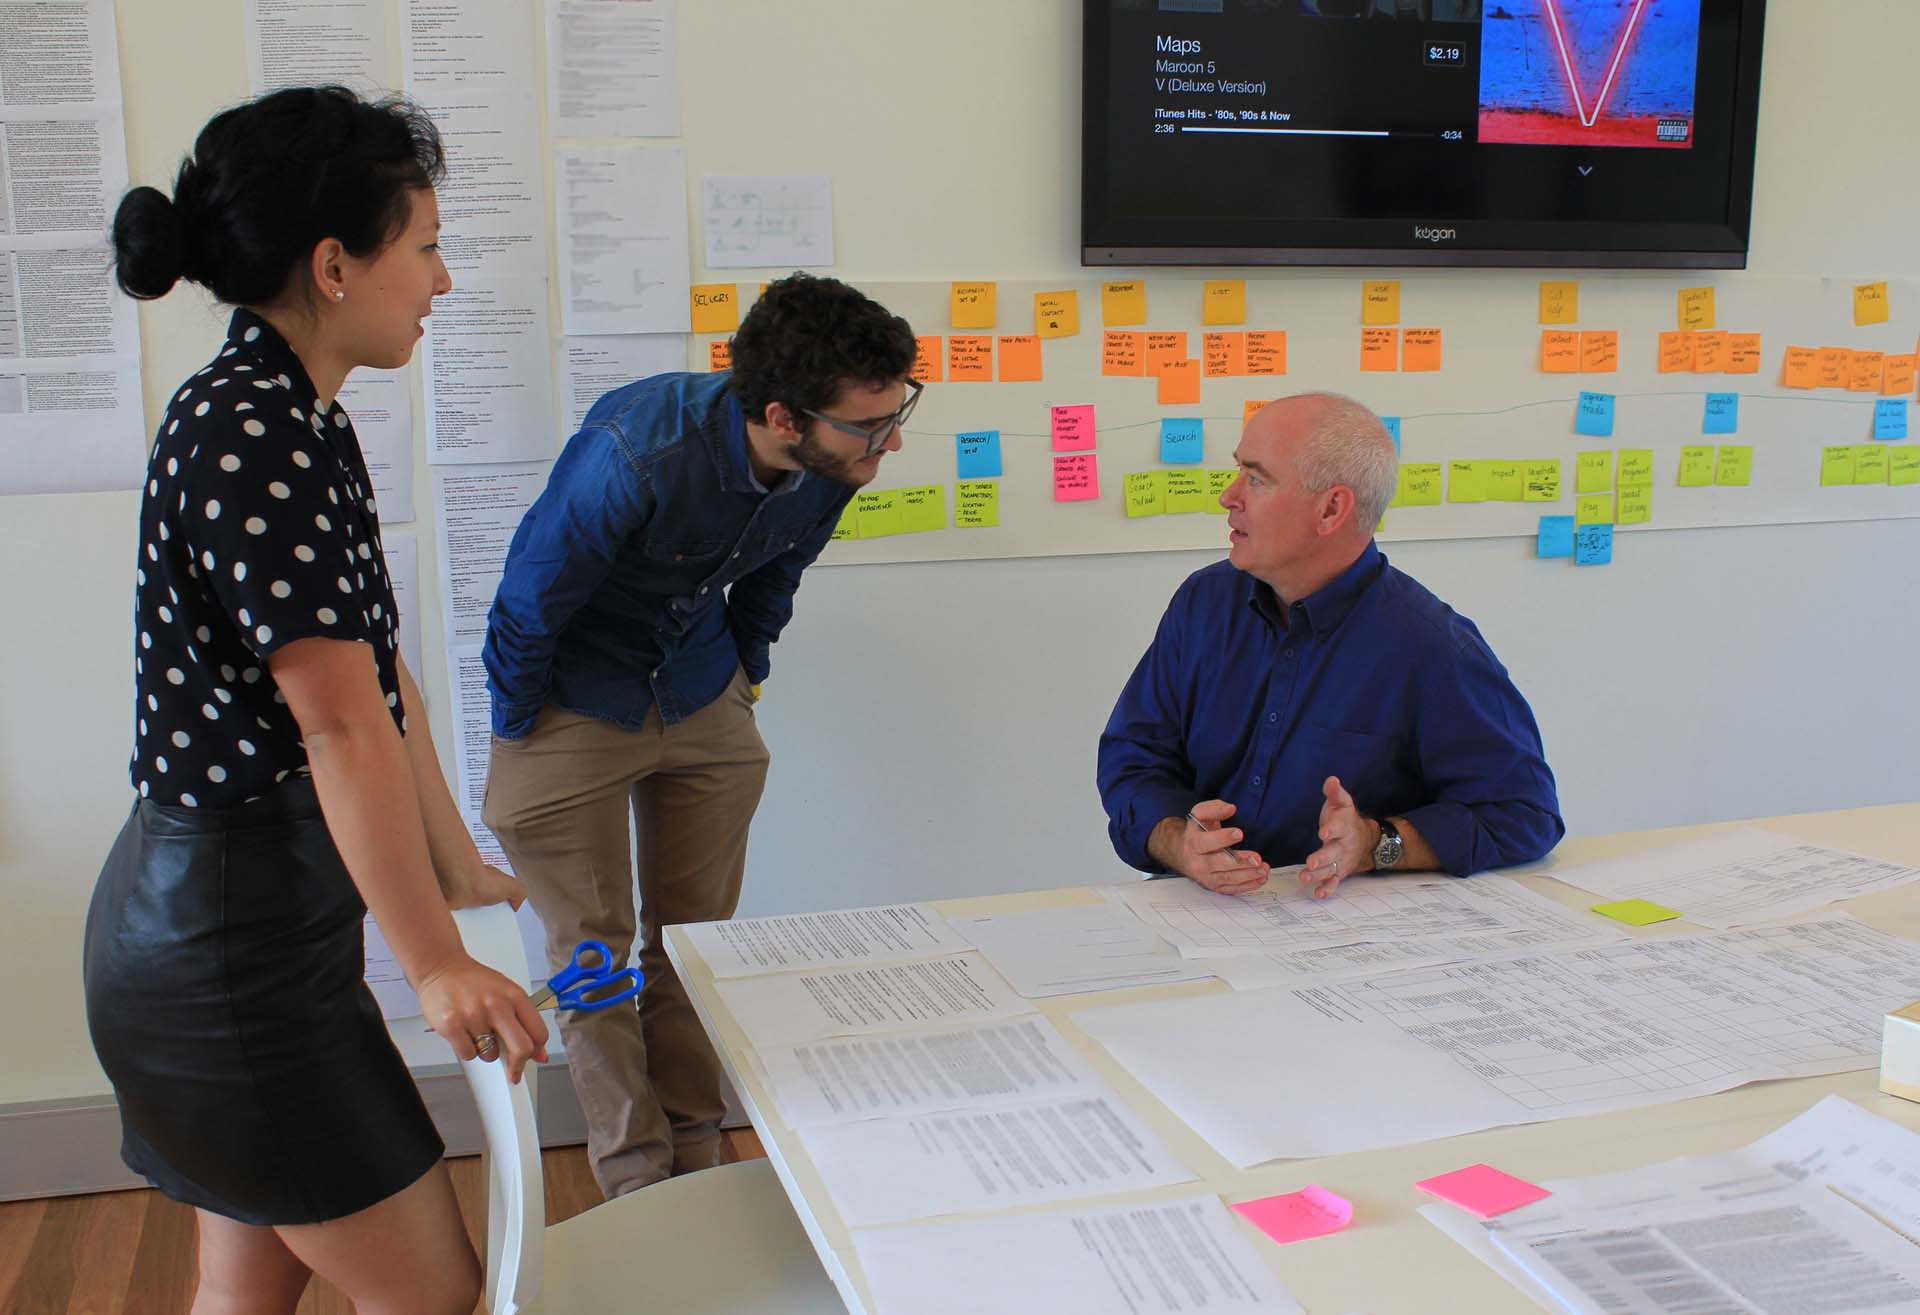 Proto experience designers discussing a customer journey map